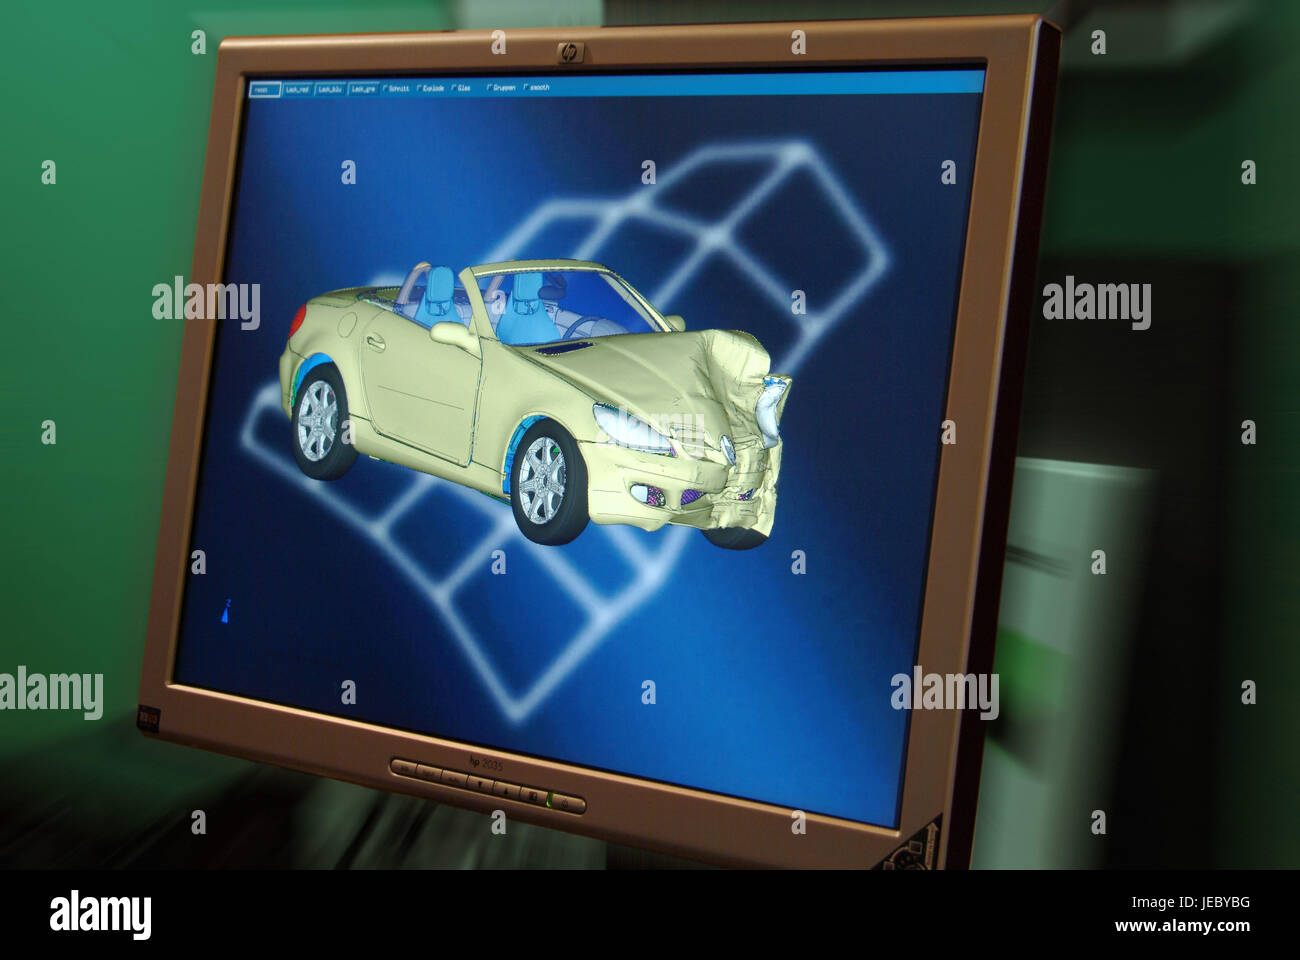 Virtual computer-assisted accident research, 3-D simulation, - Stock Image